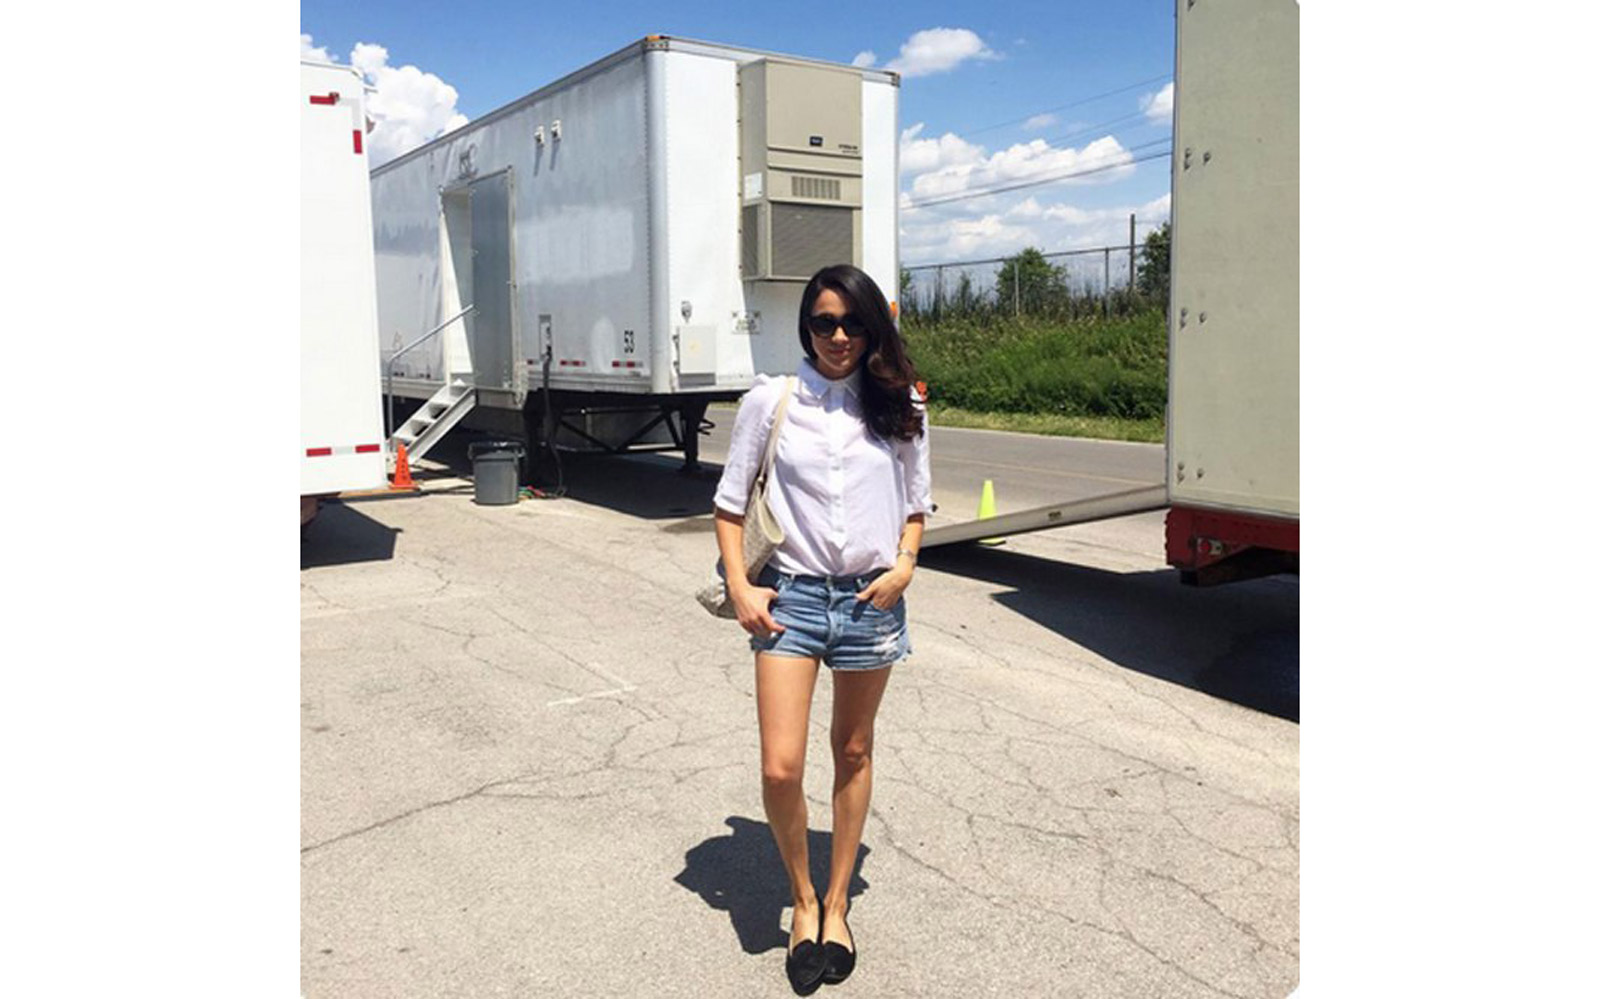 Meghan Markle on the set of 'Suits'